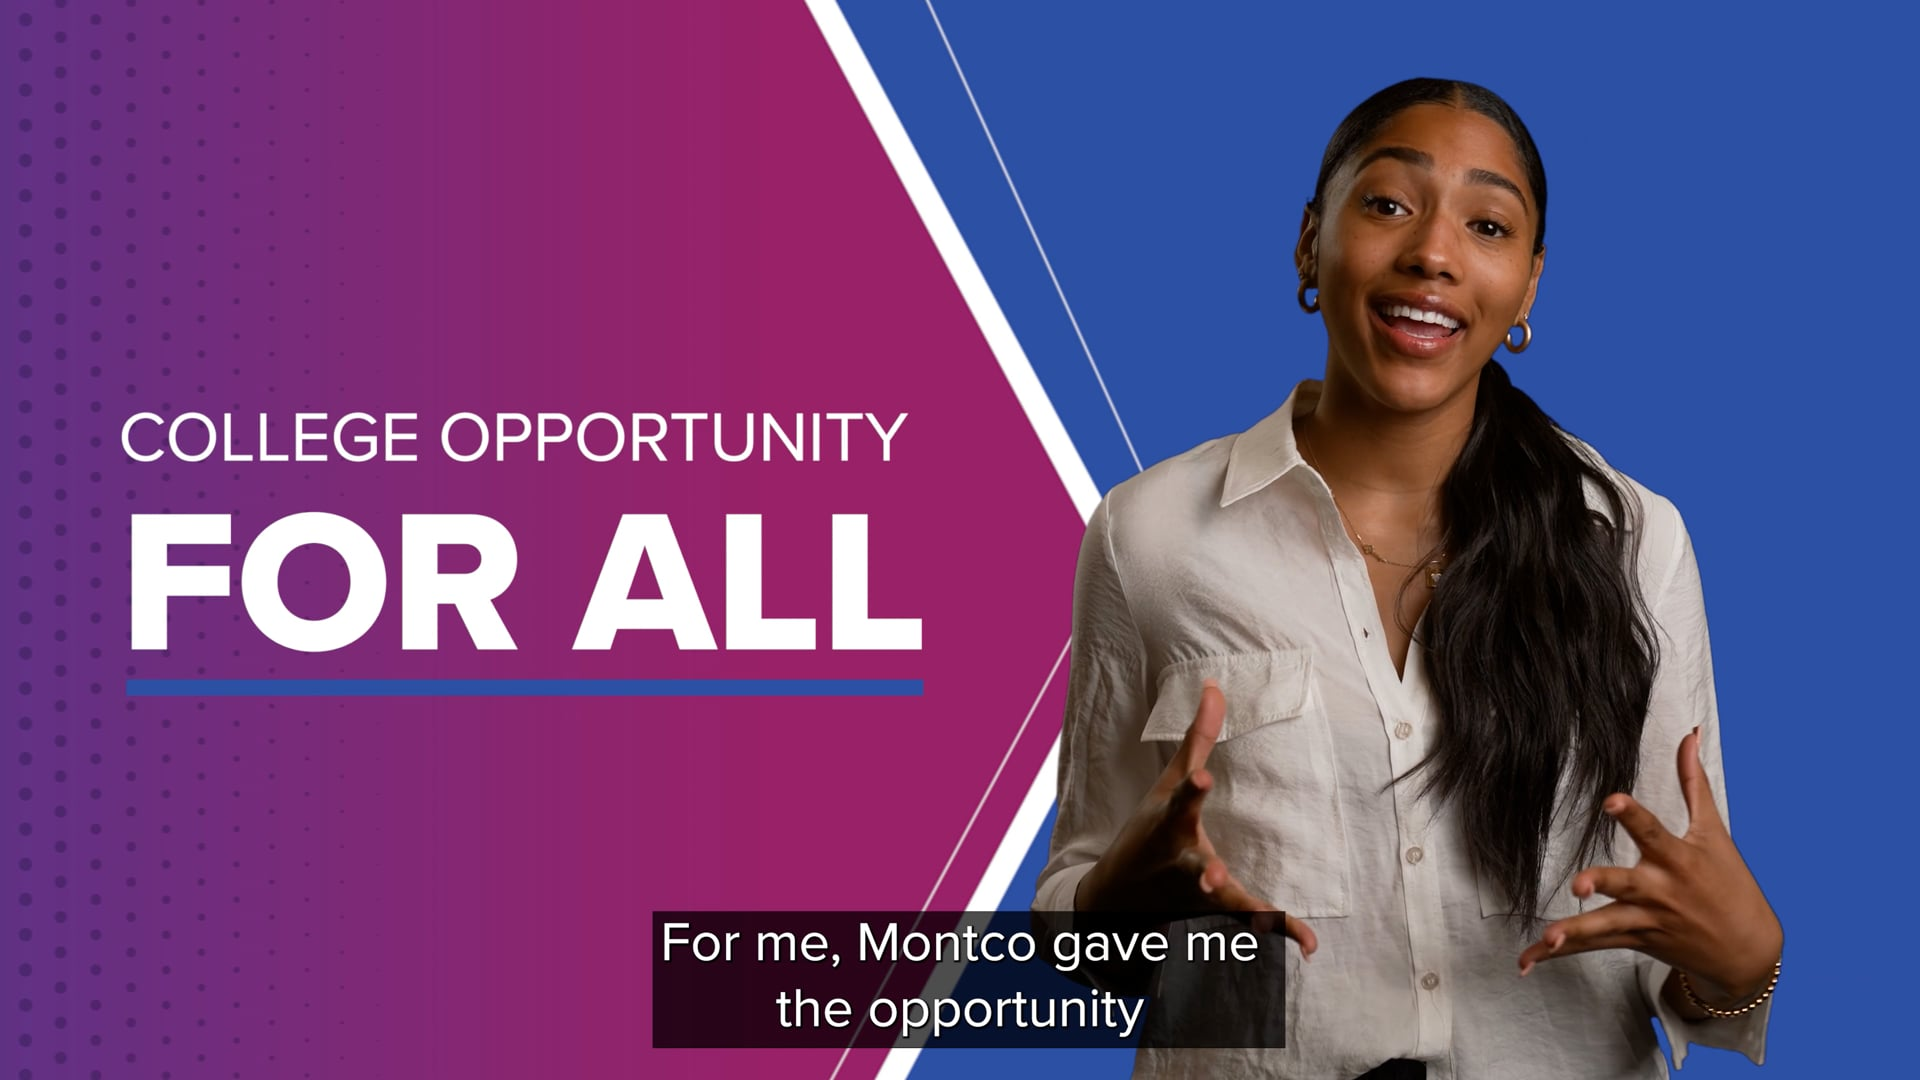 MC3 FOR ALL Campaign - College Opportunity